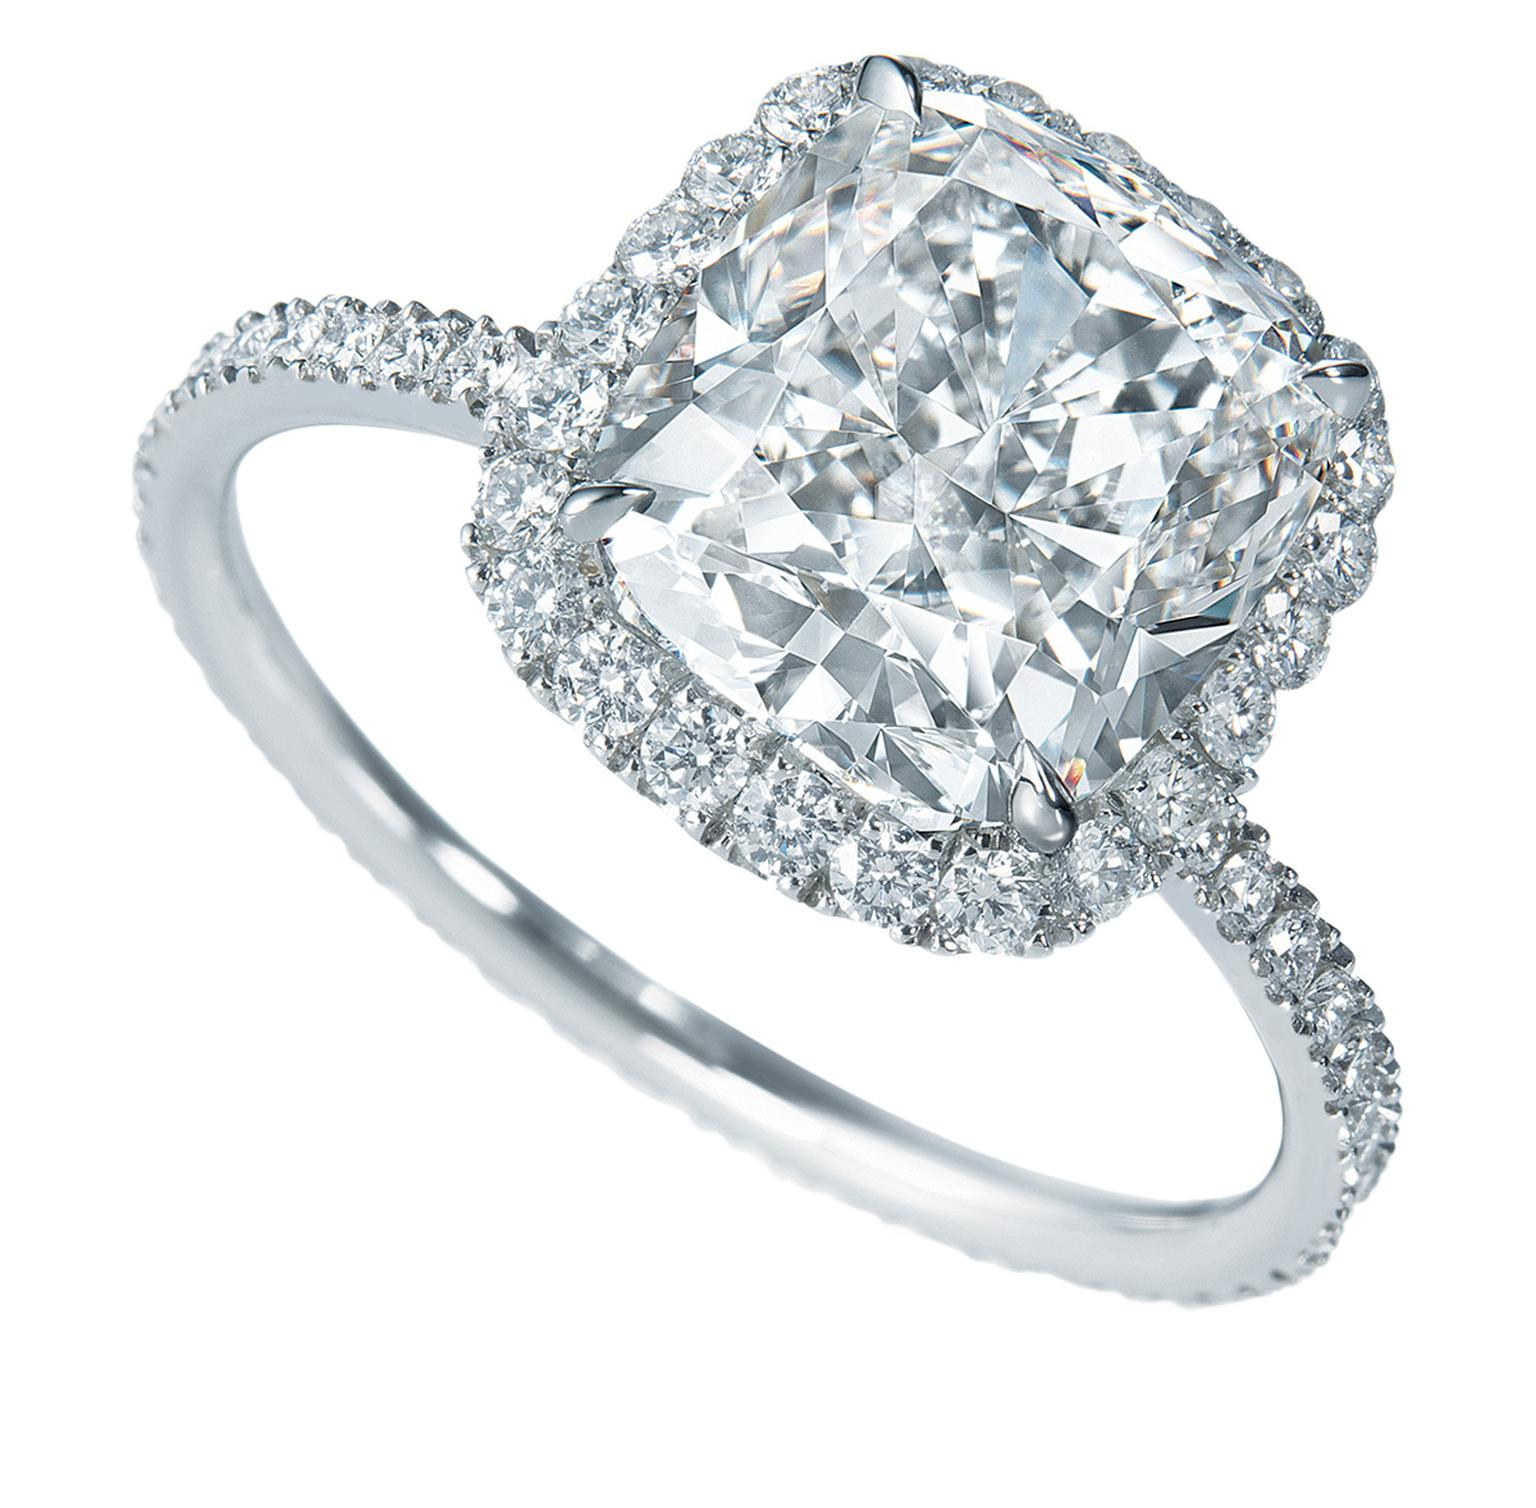 Harry Winston The One engagement ring_20131126_Zoom